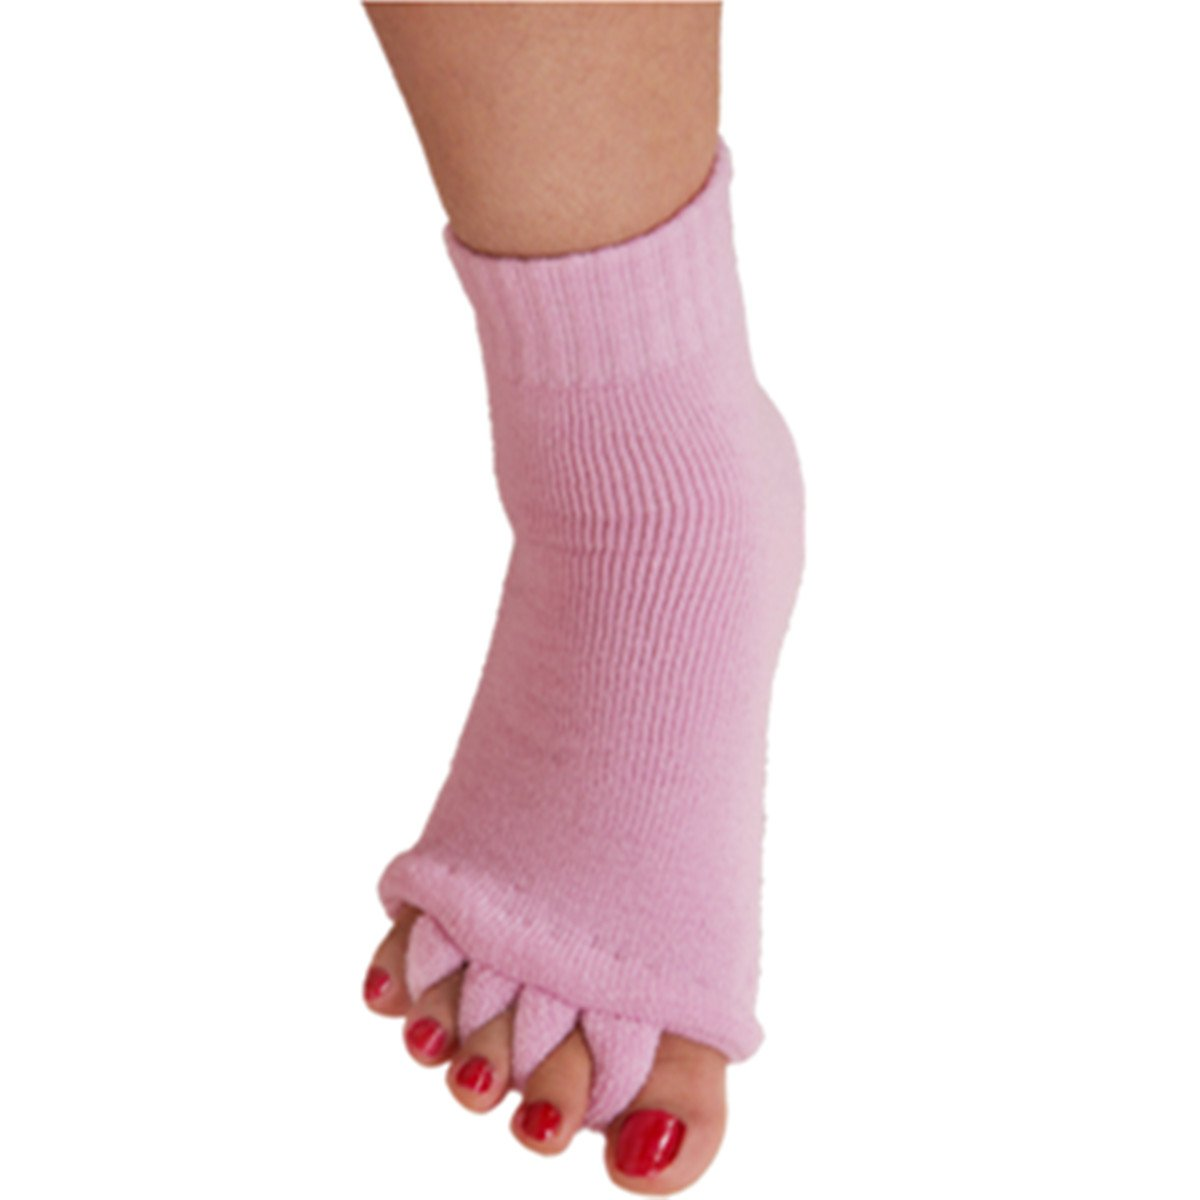 1 Pair Yoga GYM Massage Five Toe Separator Socks Foot Alignment Pain Relief Hot (One Size, A-purple)